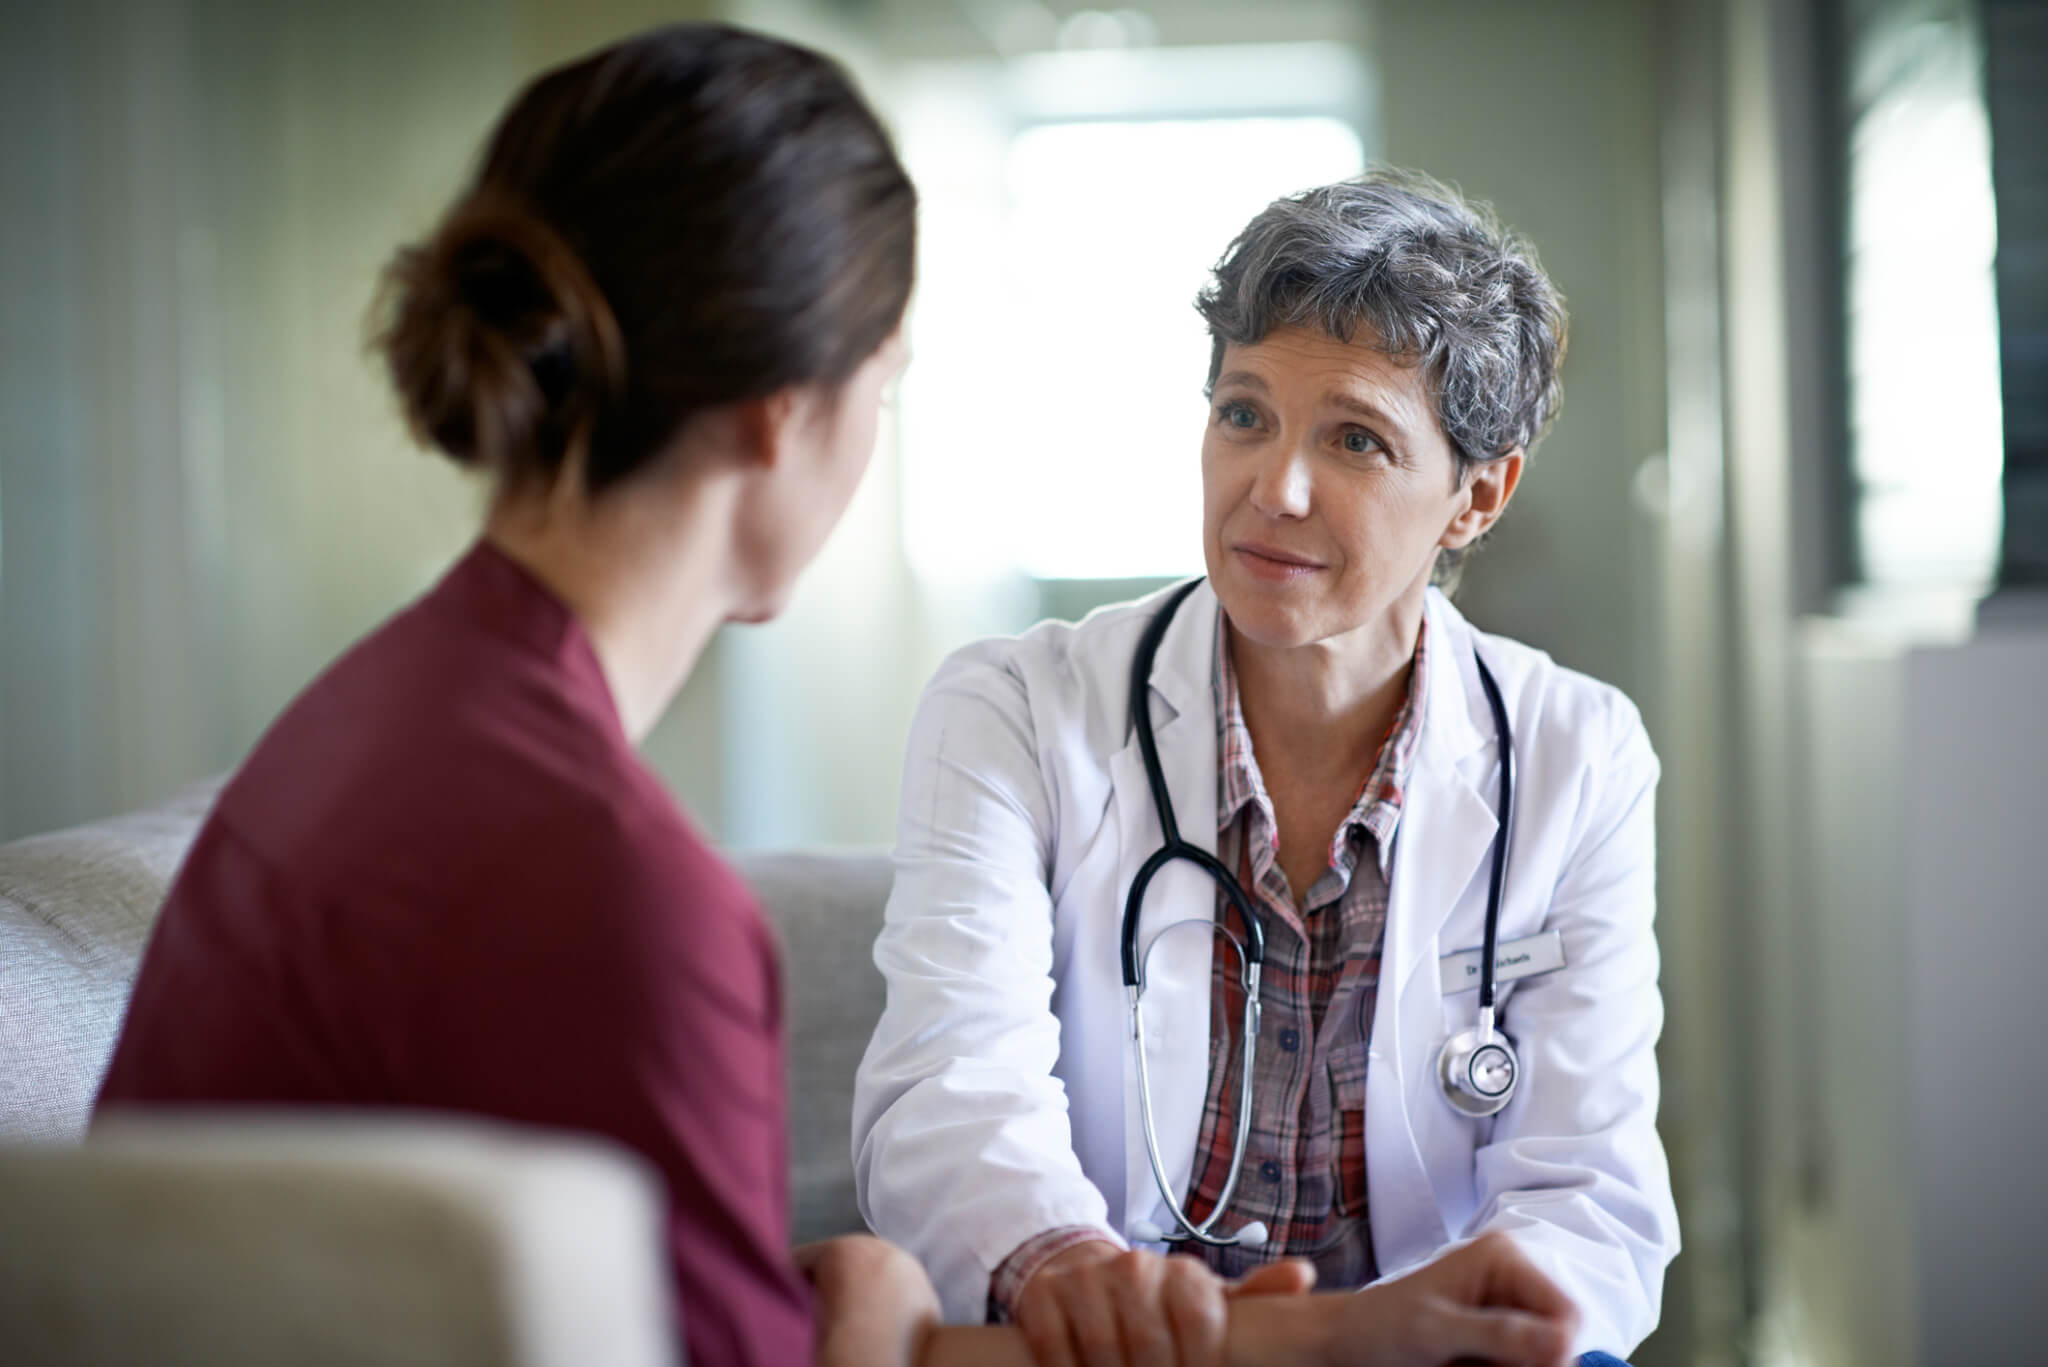 female-doctor-listening-to-female-patient-during-medical-appointment-for-yeast-infections